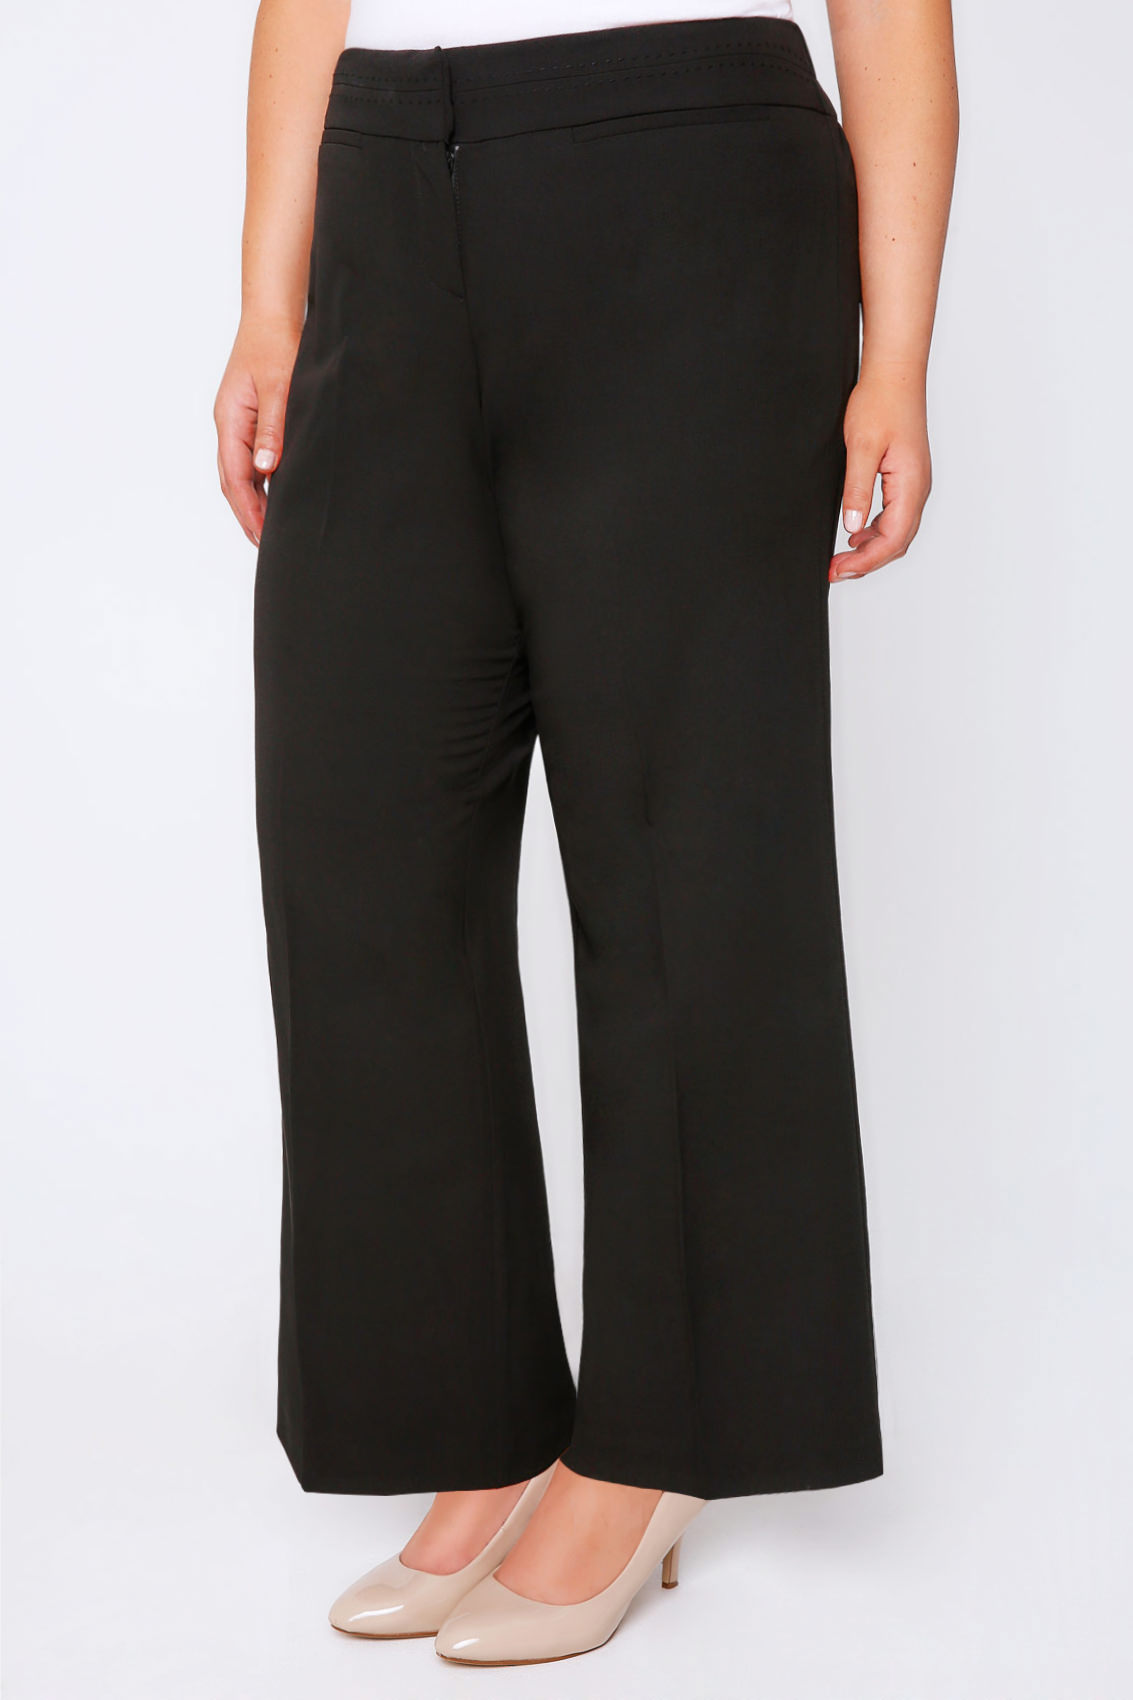 Black Wide Leg Trousers With Stab Stitch Detail Plus Size -8406